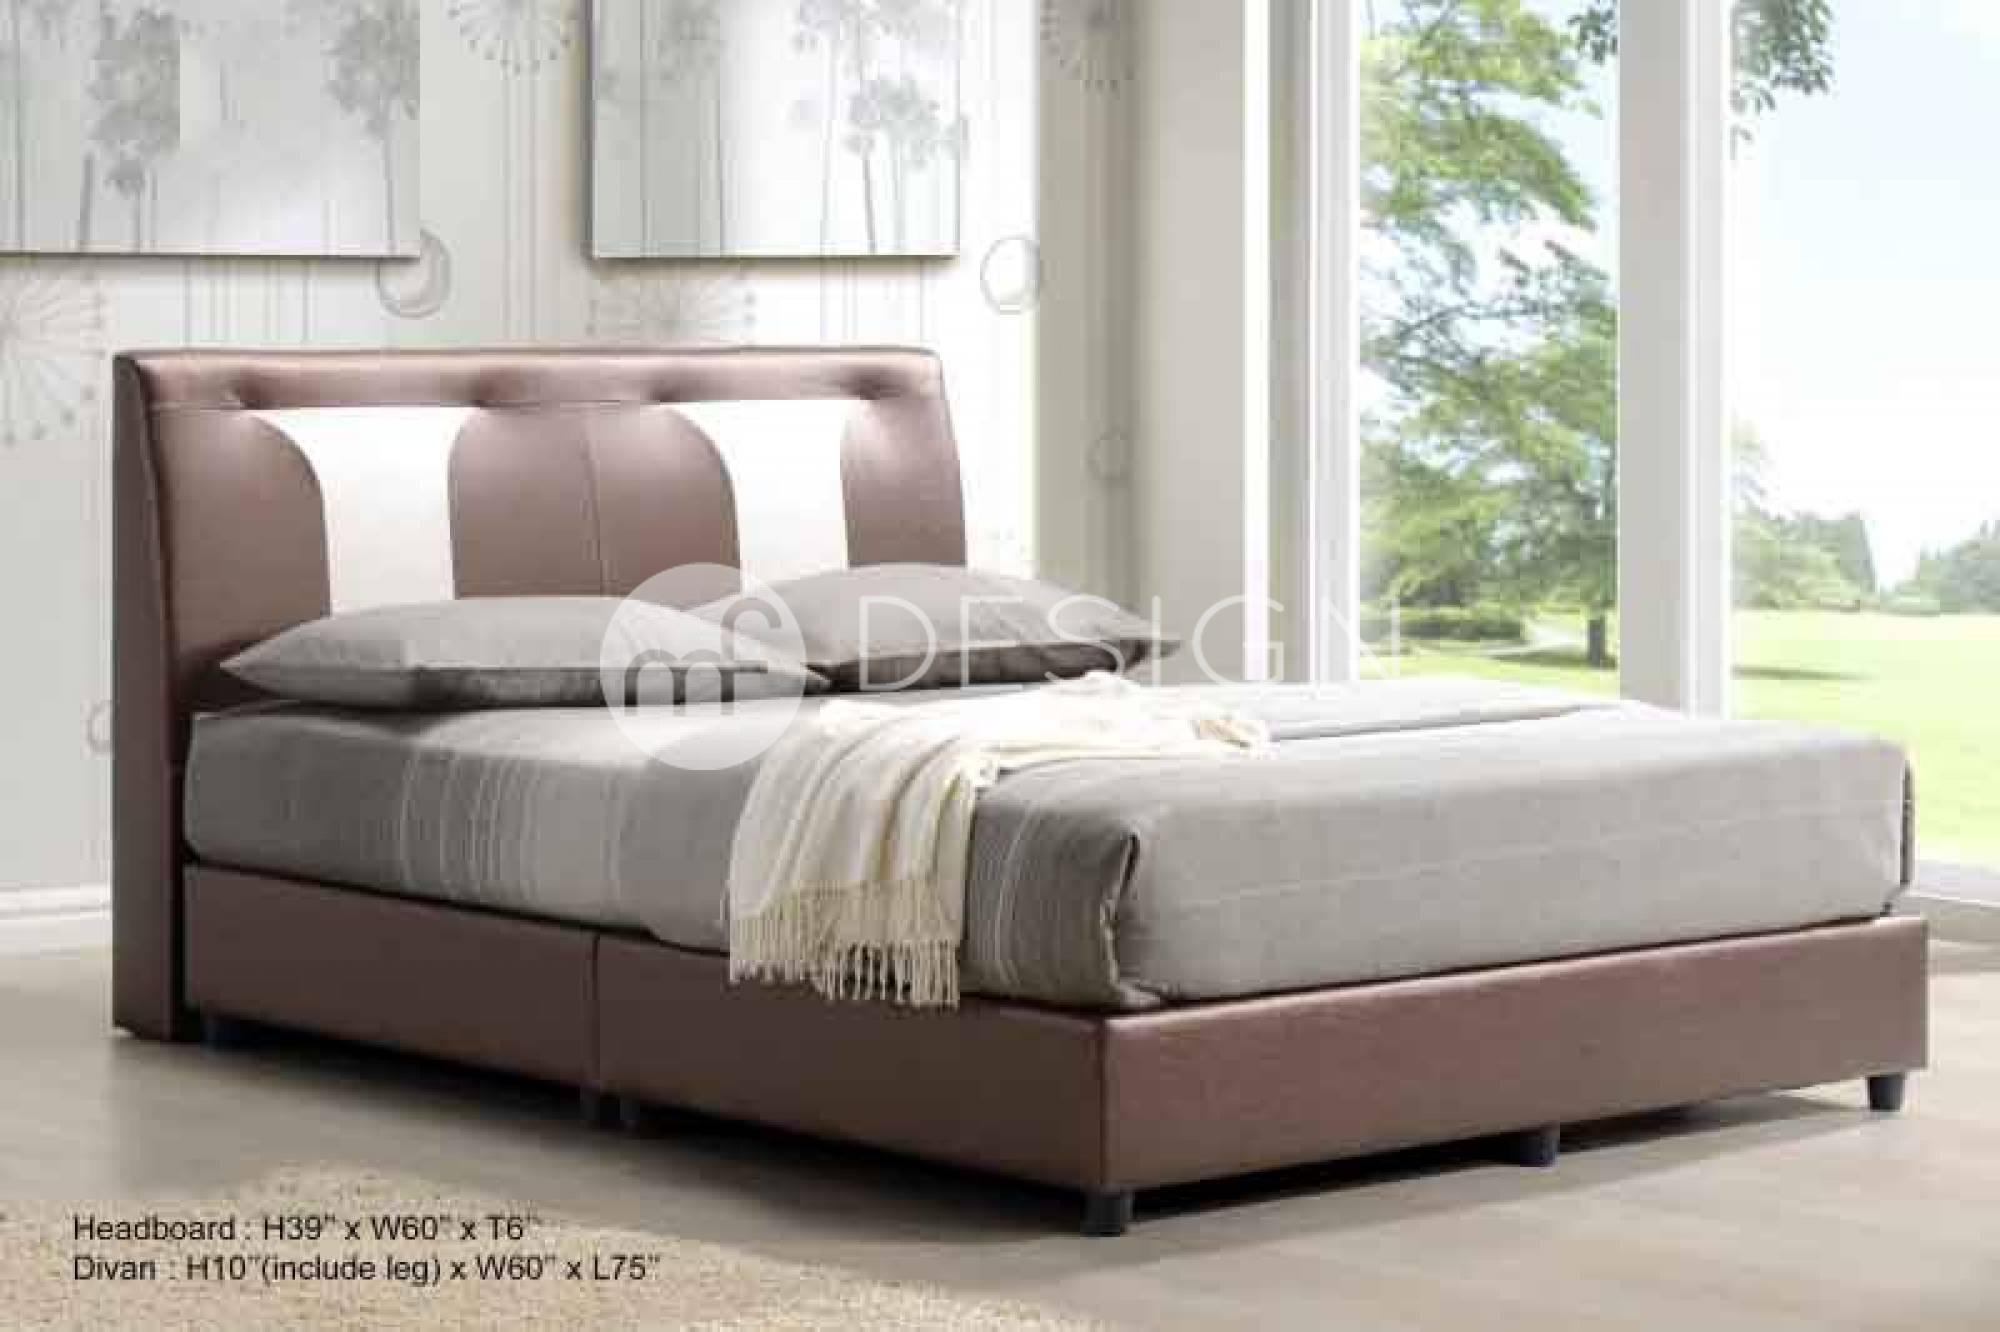 mfdesign88 BERLIN DIVAN BED